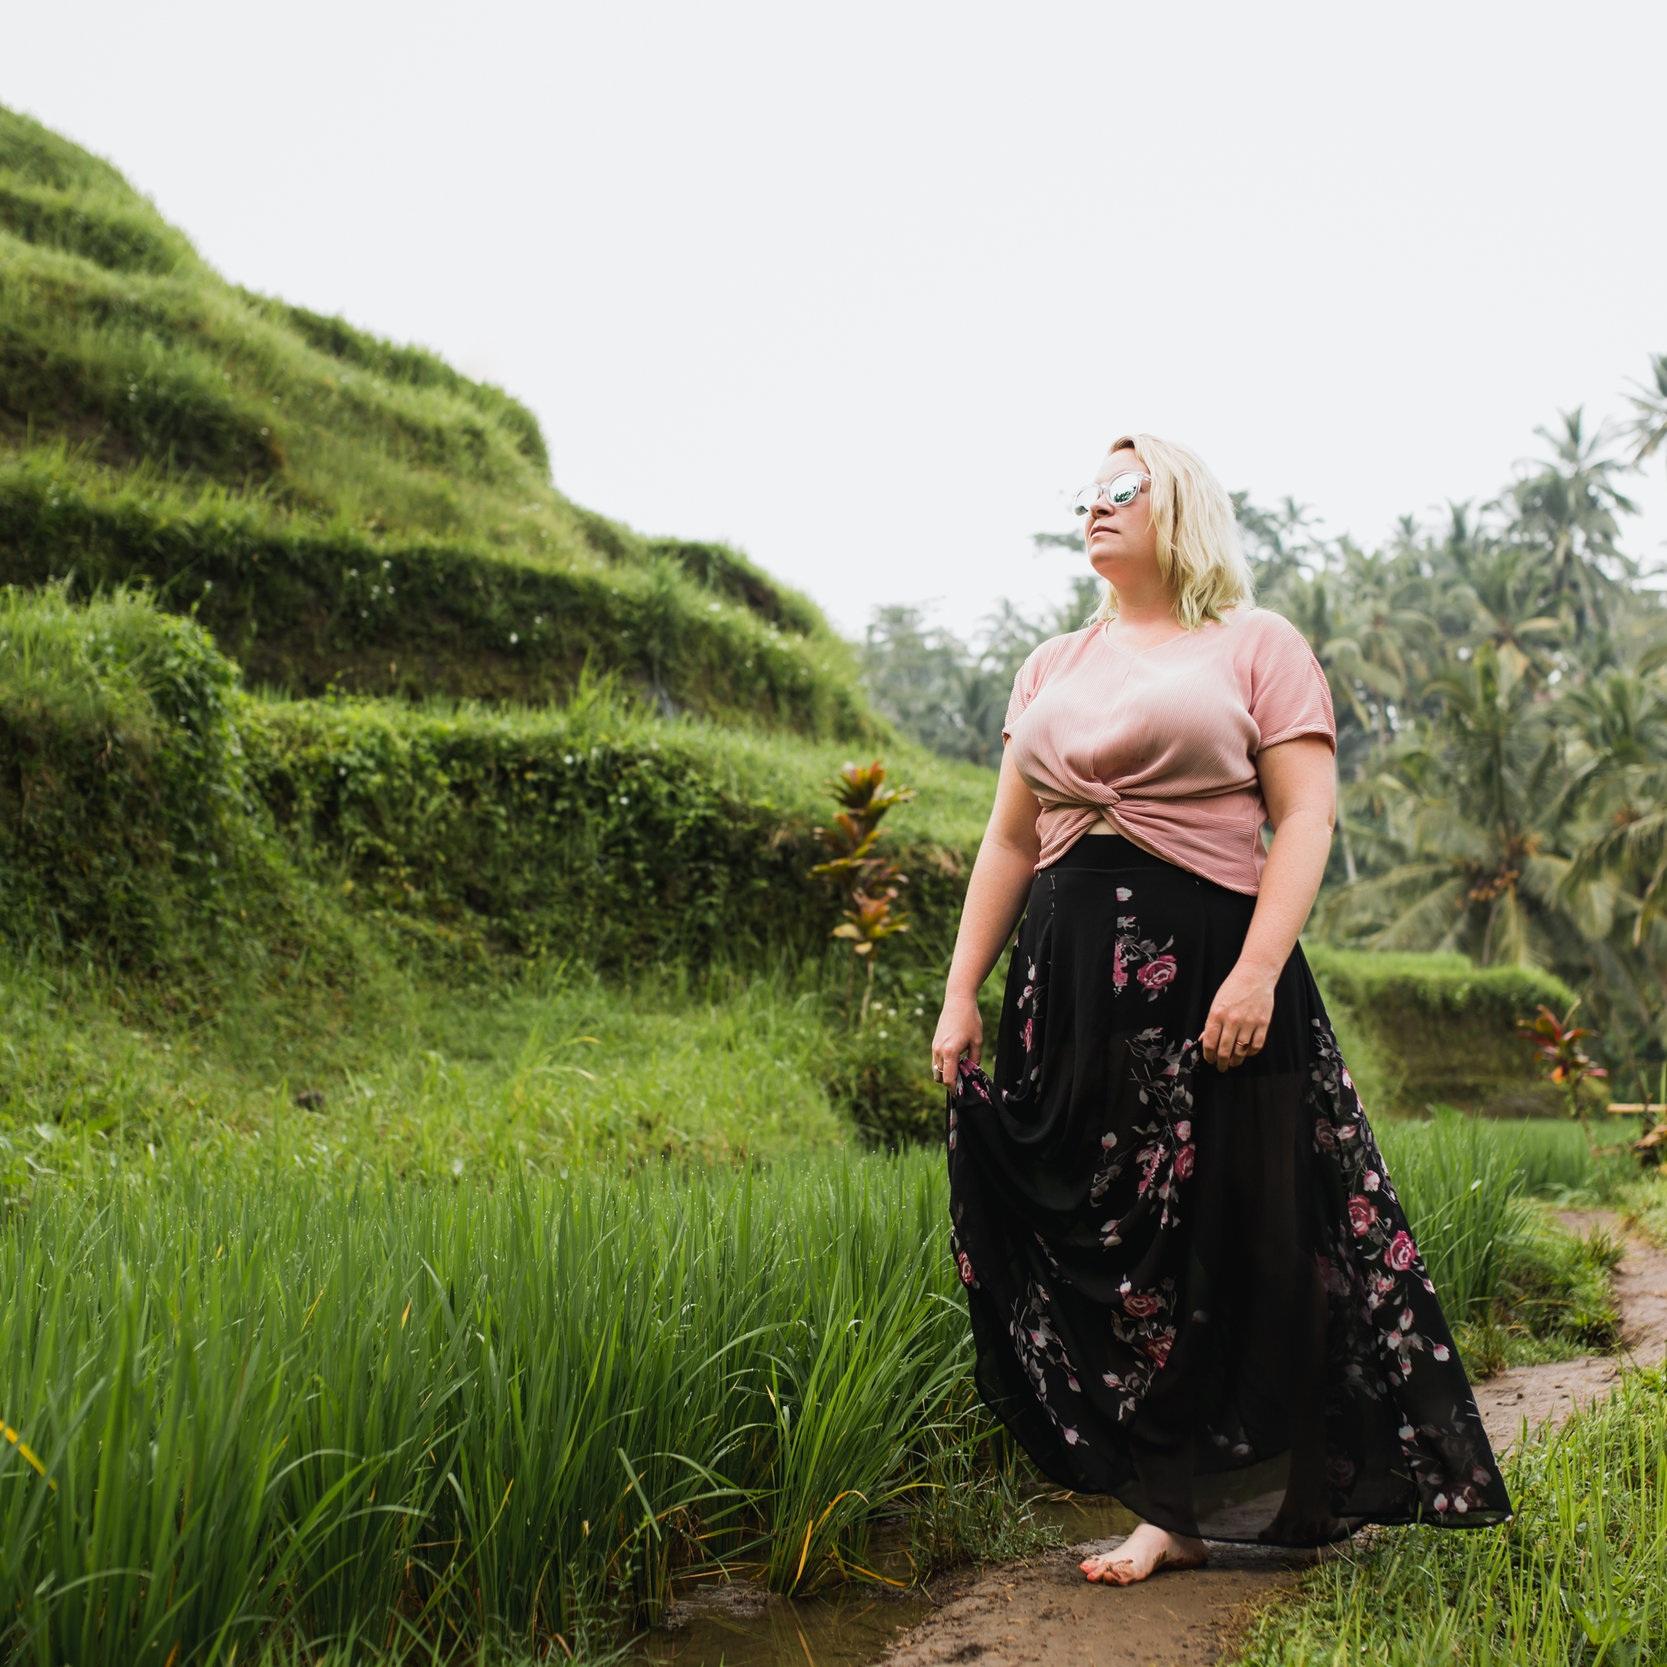 bali-03-23-2019-just-because-29_original.jpg